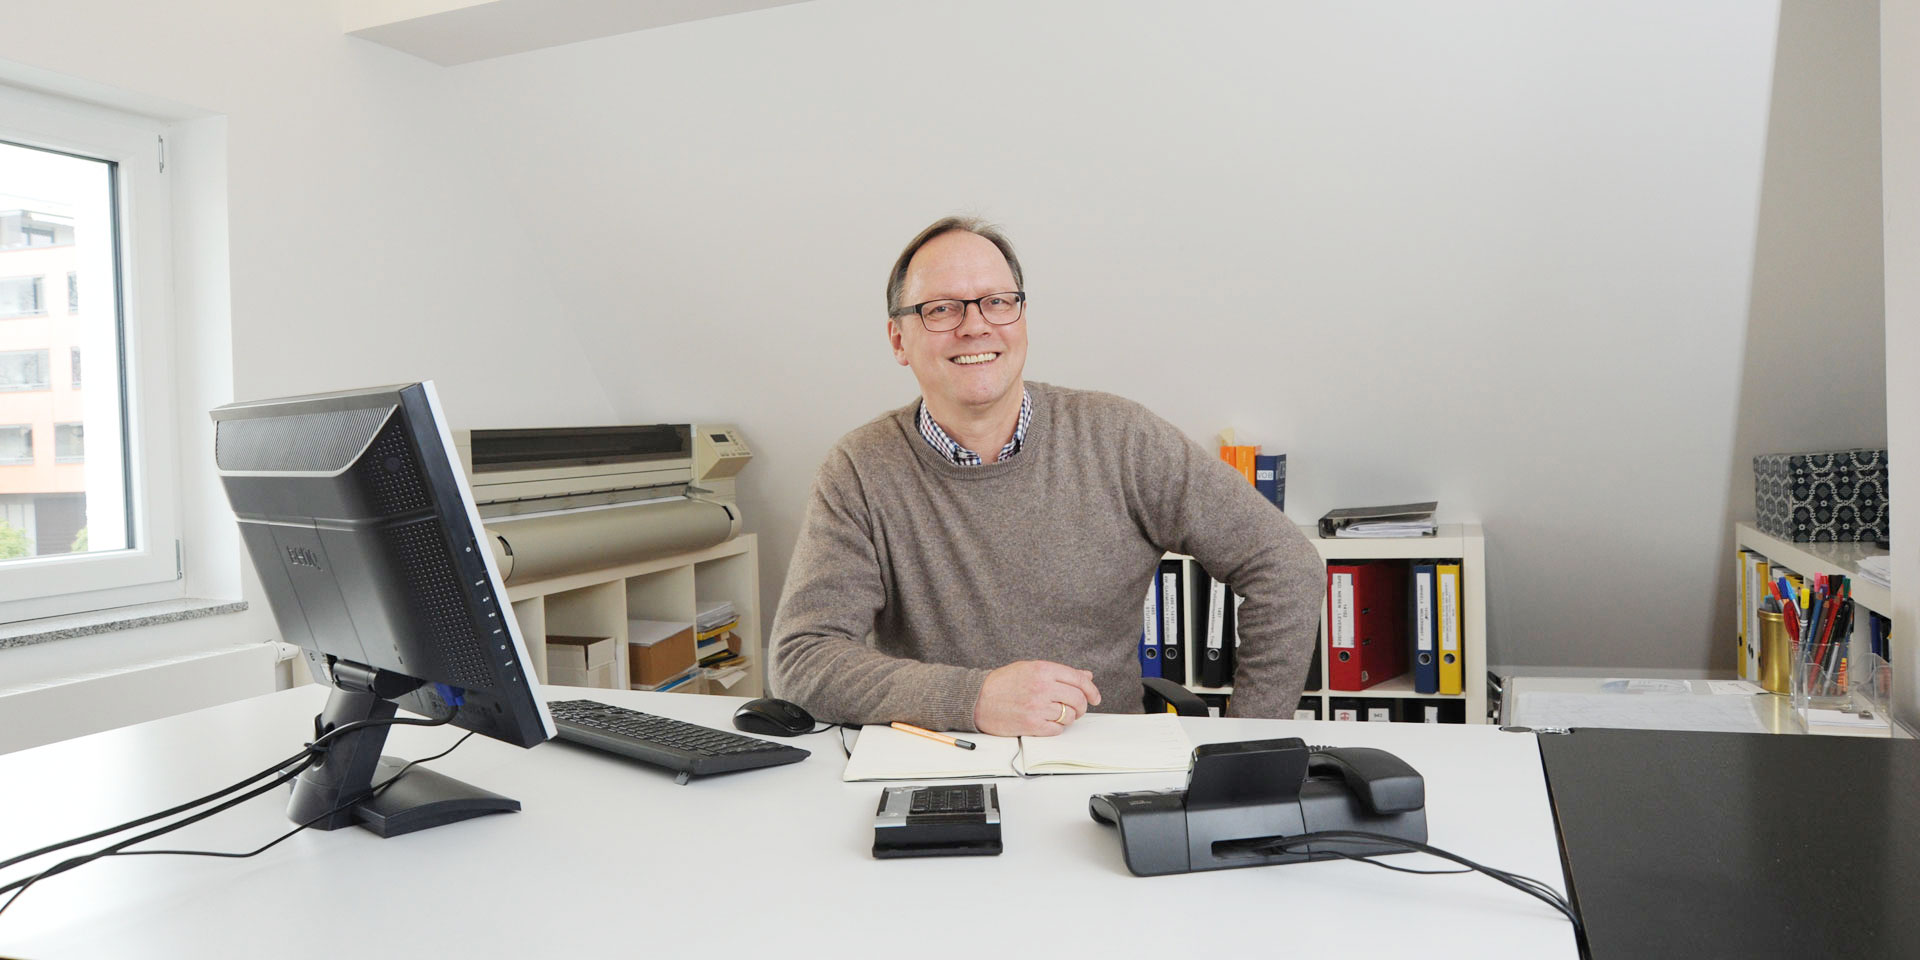 Architekt Thomas Frank in seinem Büro in Mainz